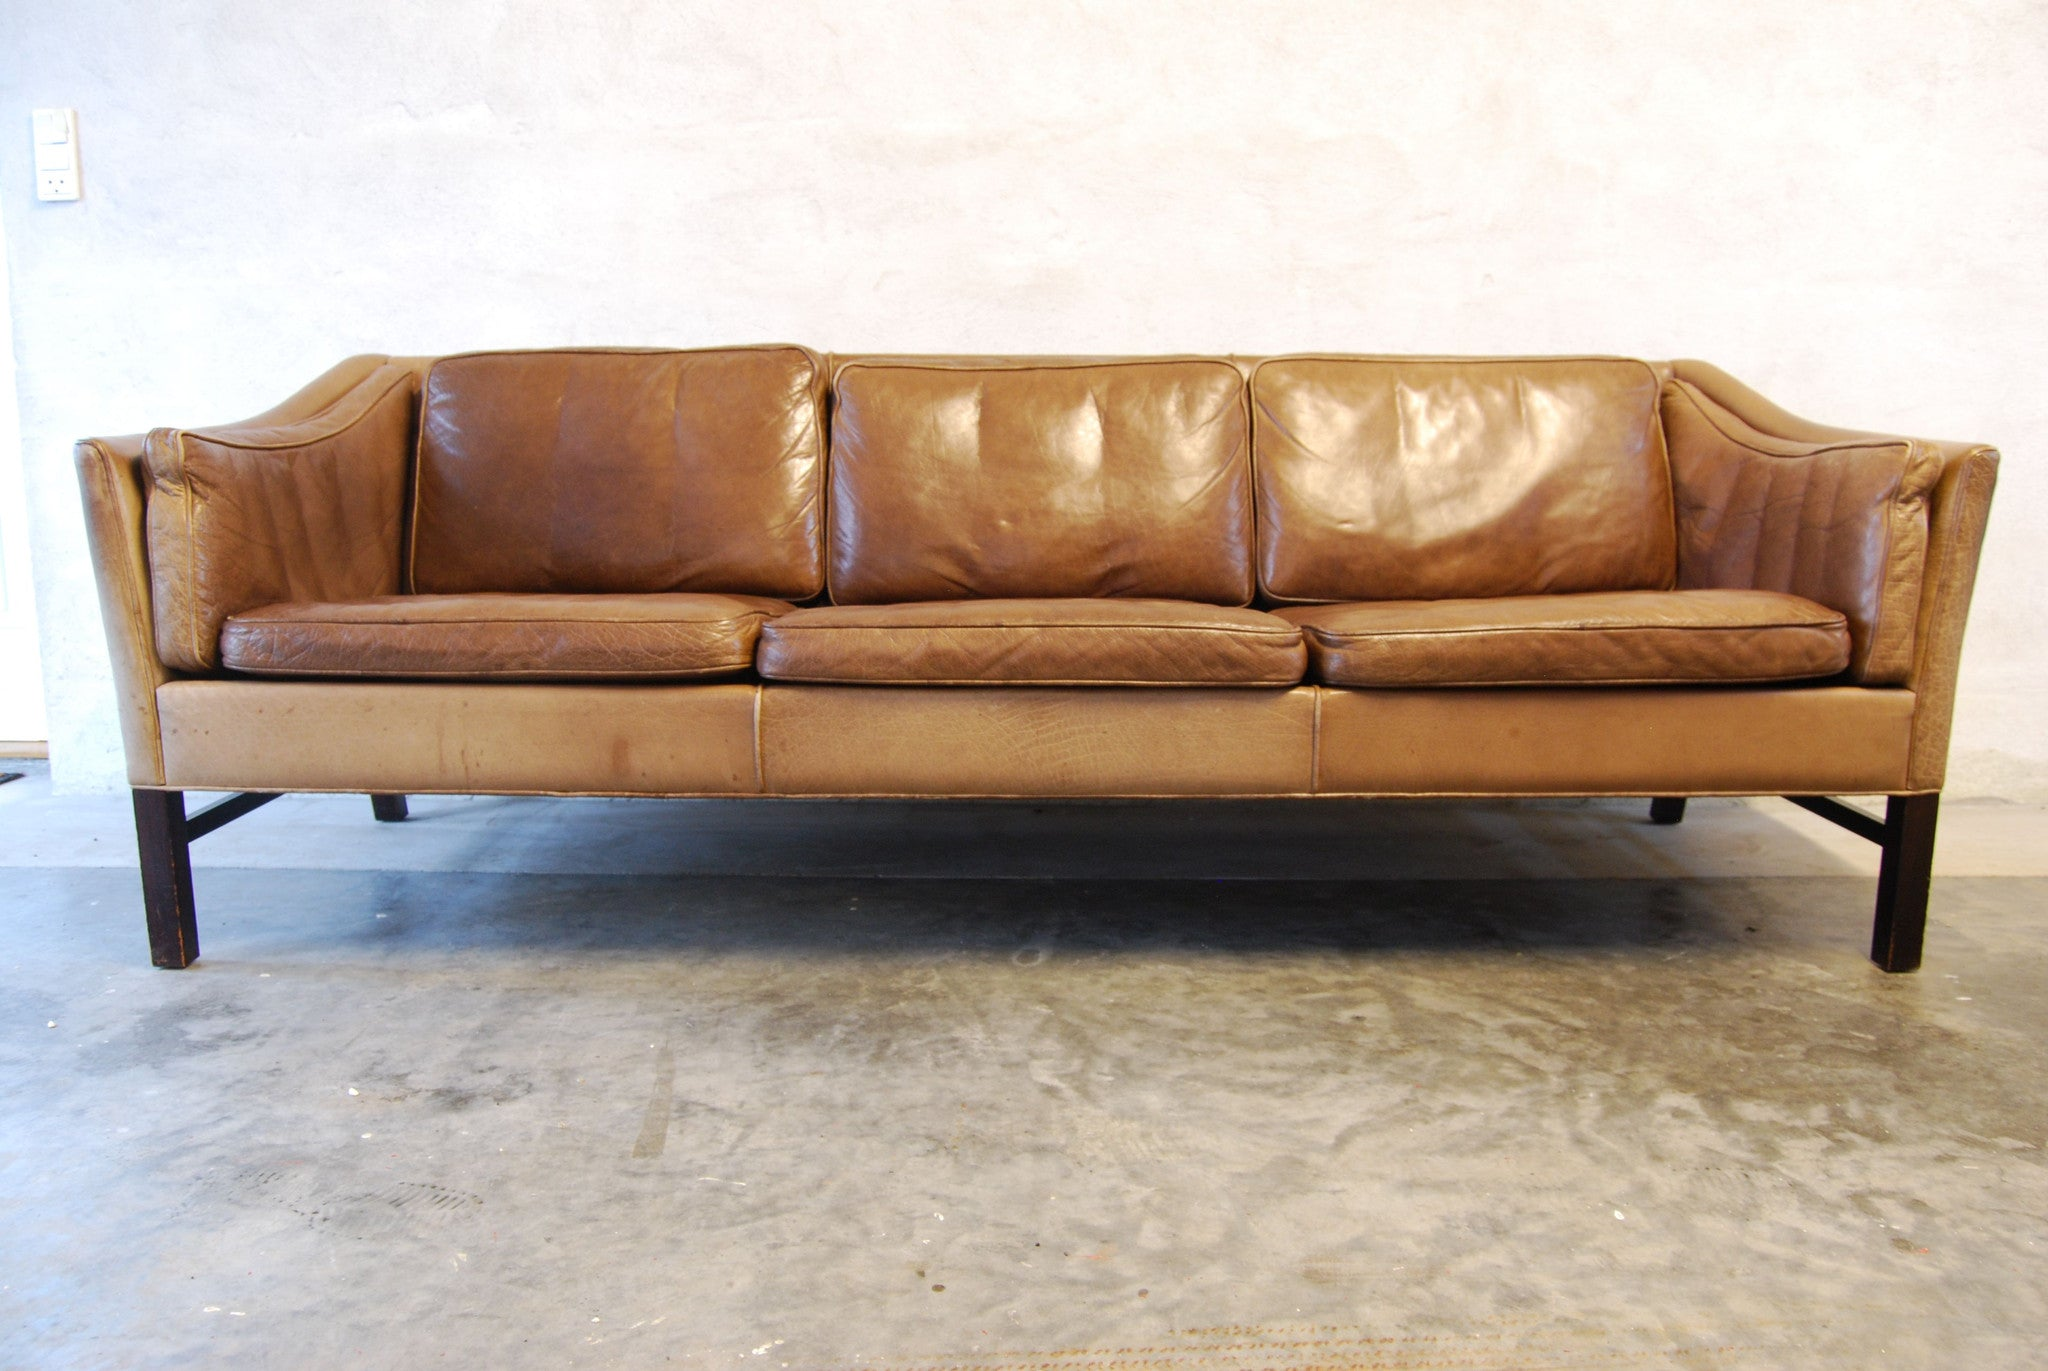 Chase & Sorensen Three seat leather sofa with scalloped back